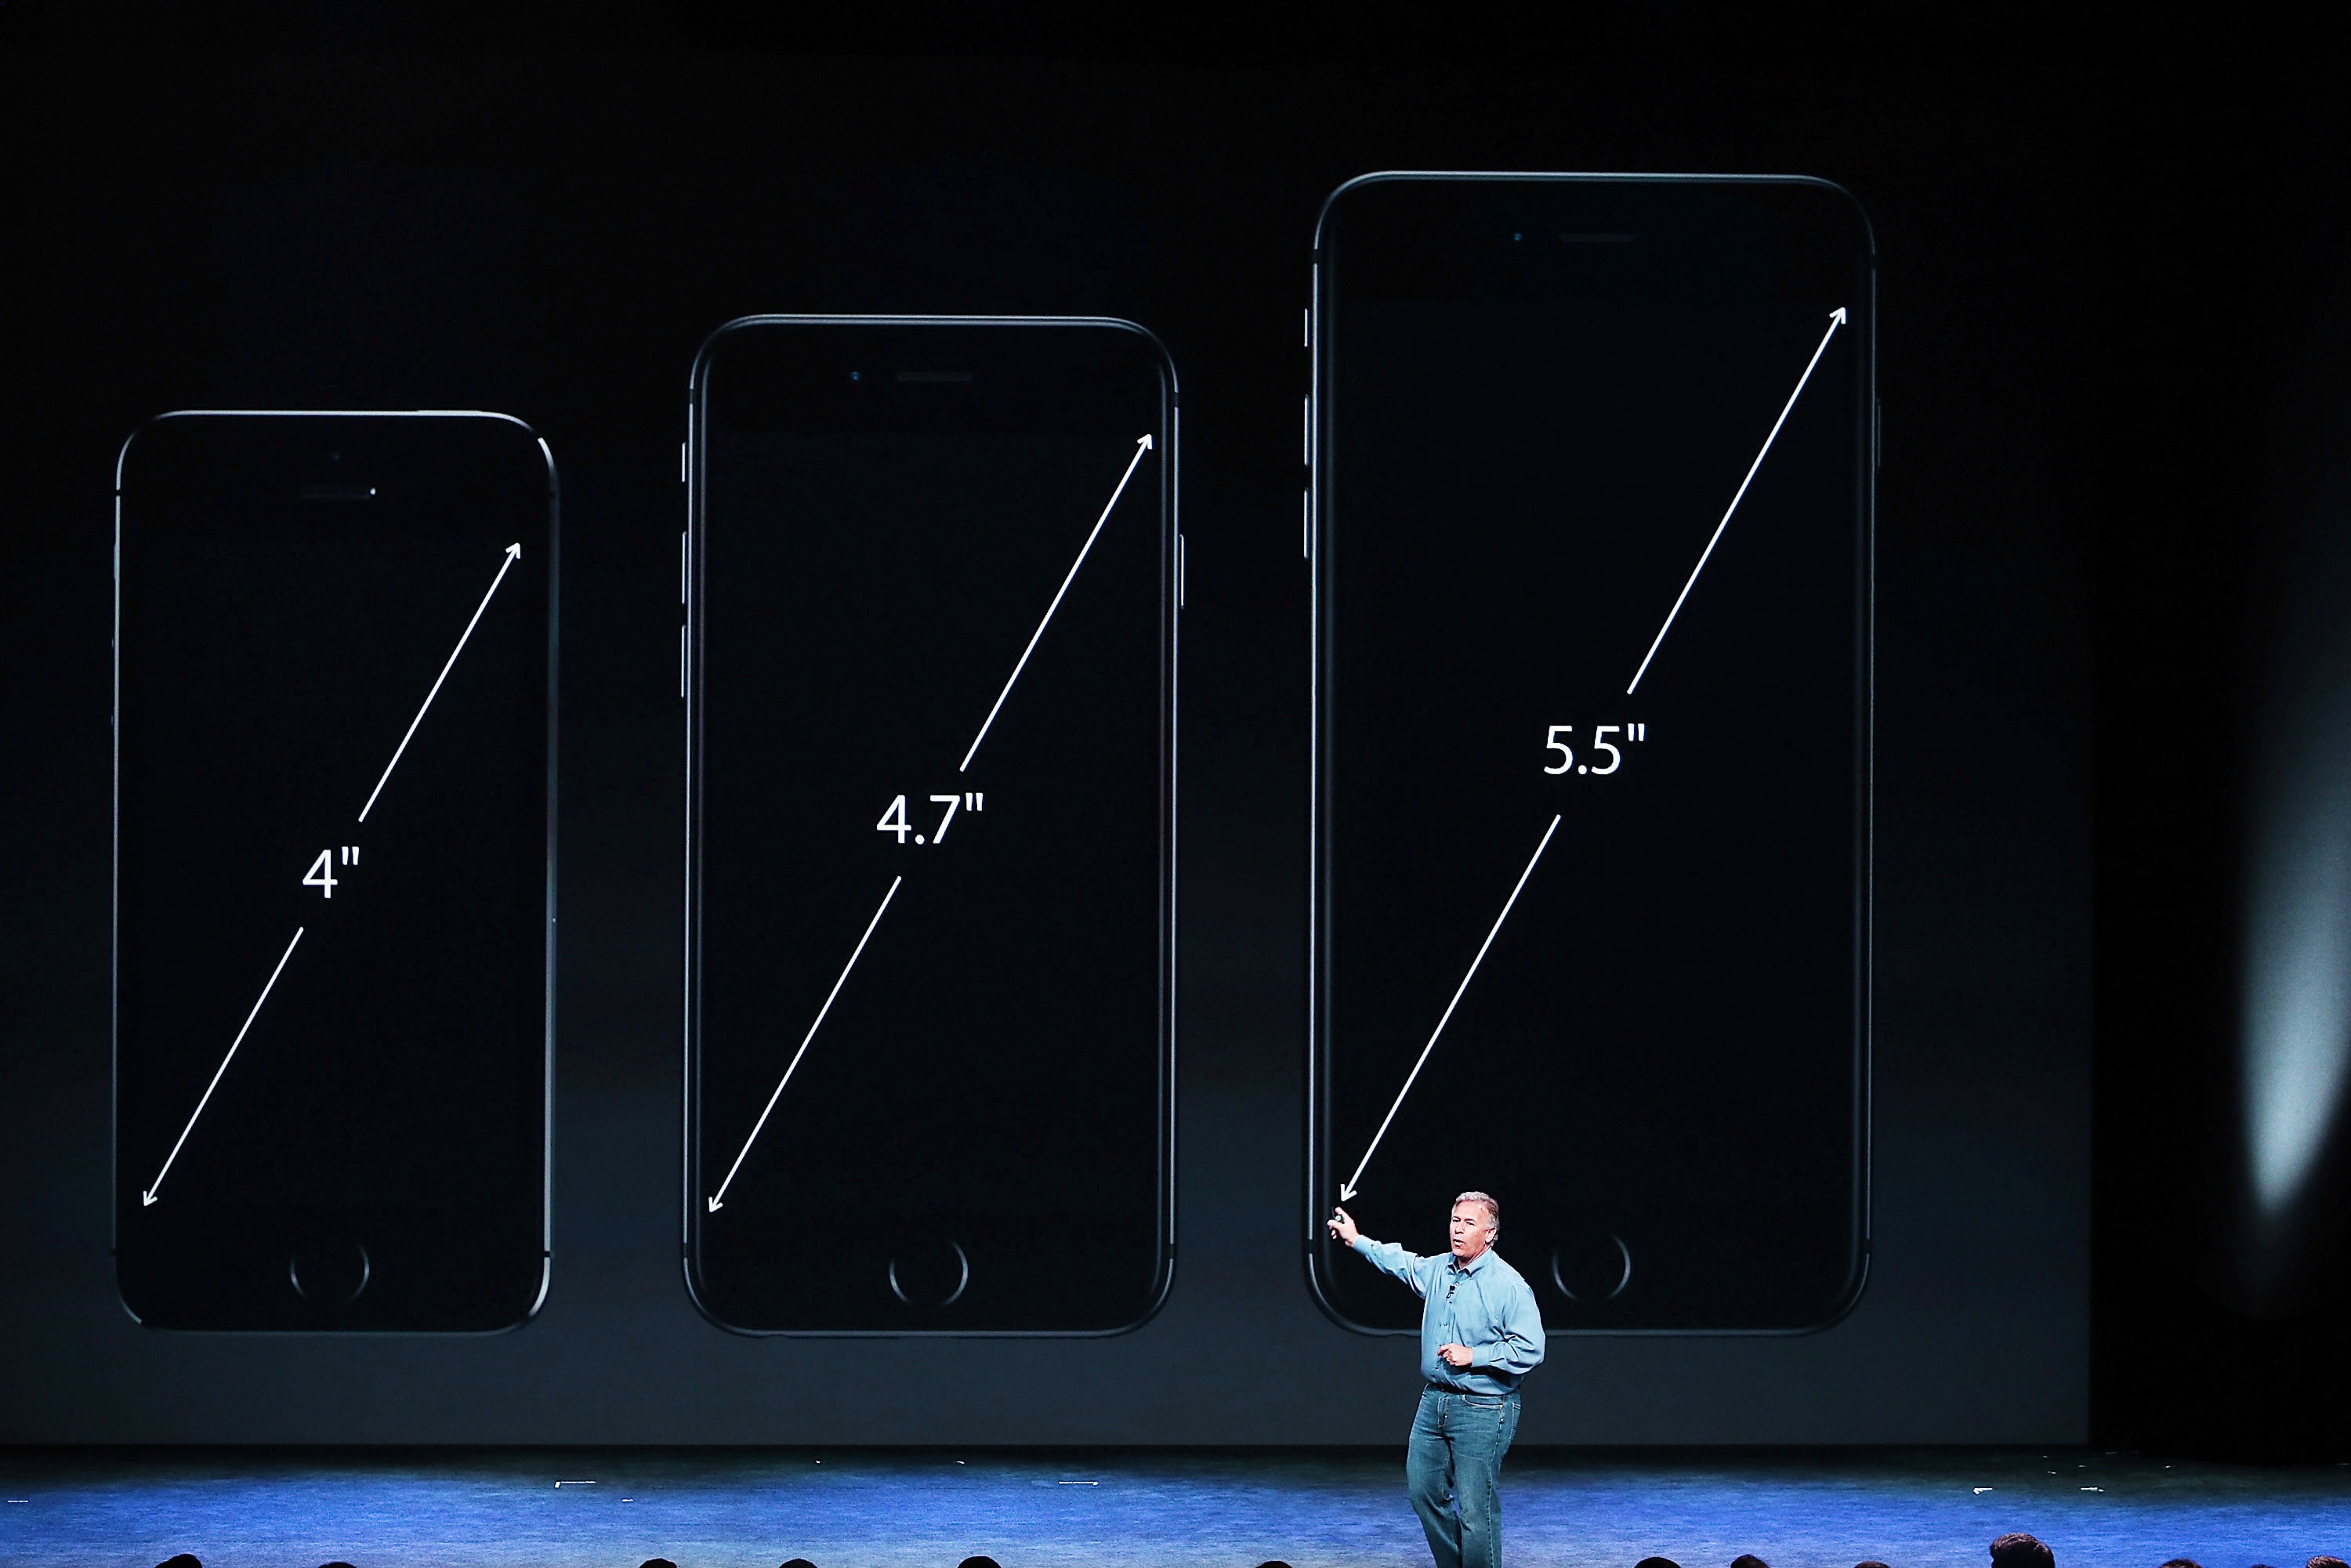 Iphone 6 events